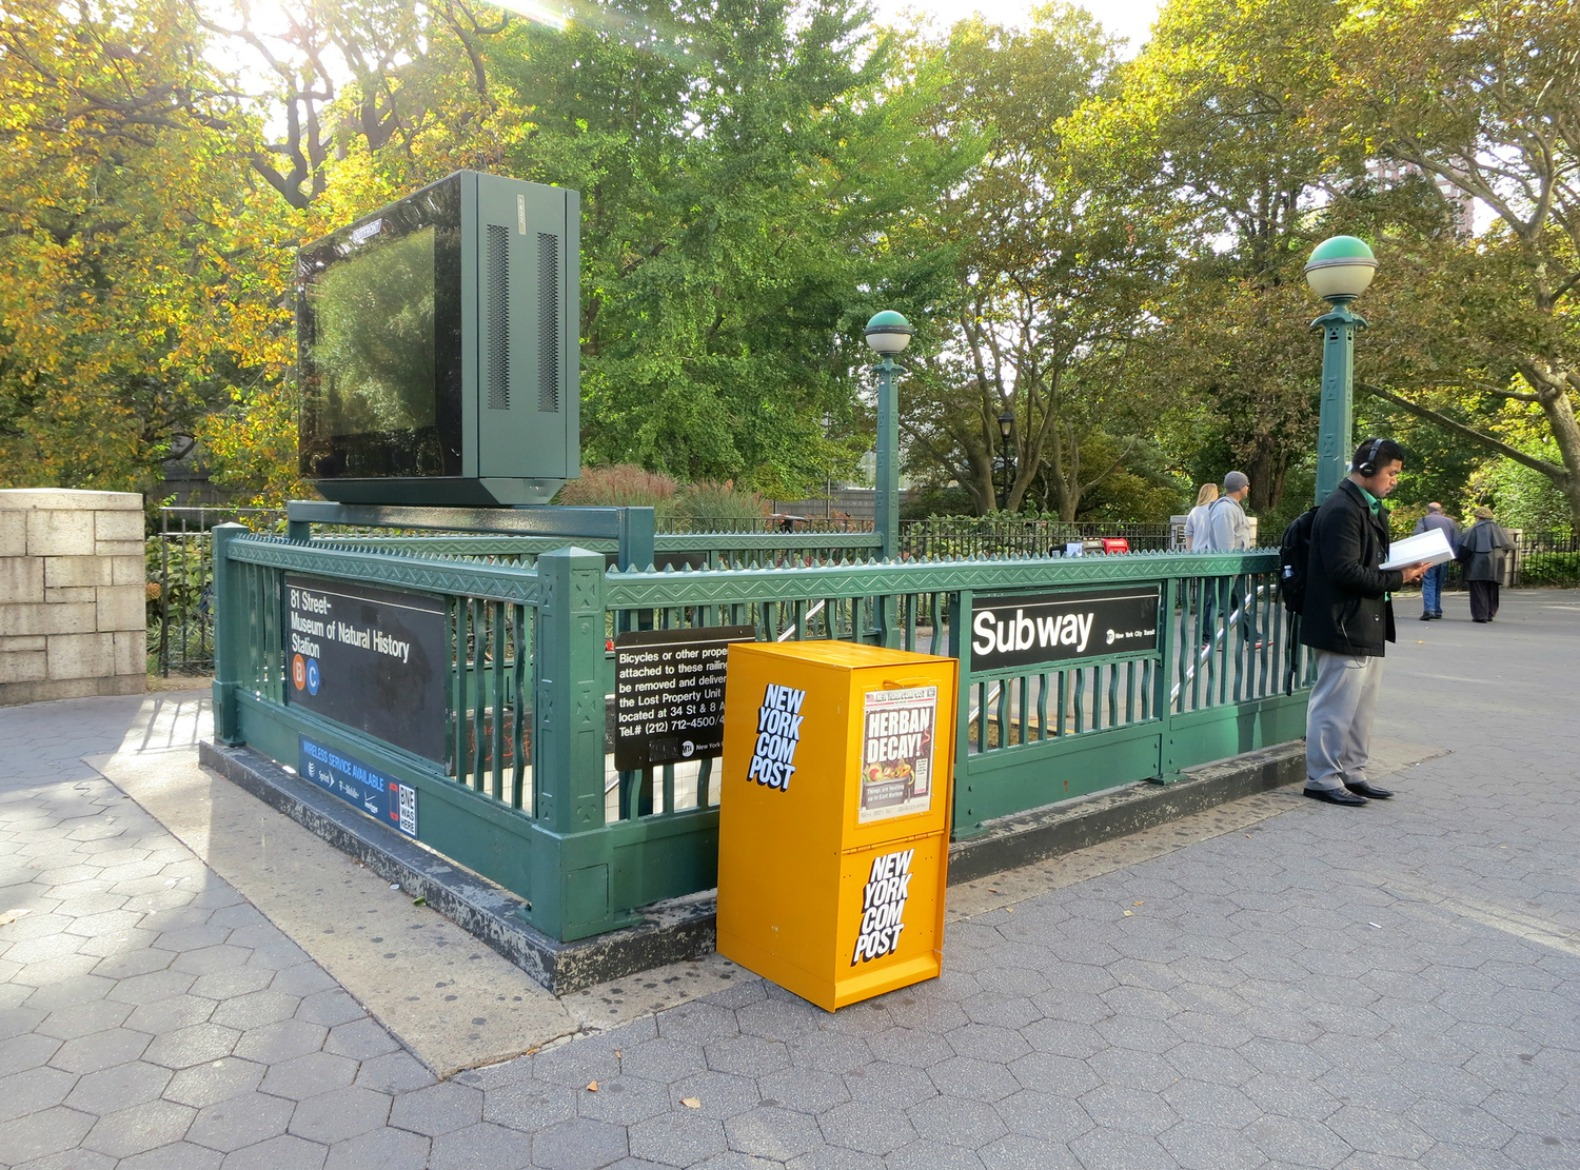 Guerrilla compost bins disguised as newspaper boxes hit the streets of NYC